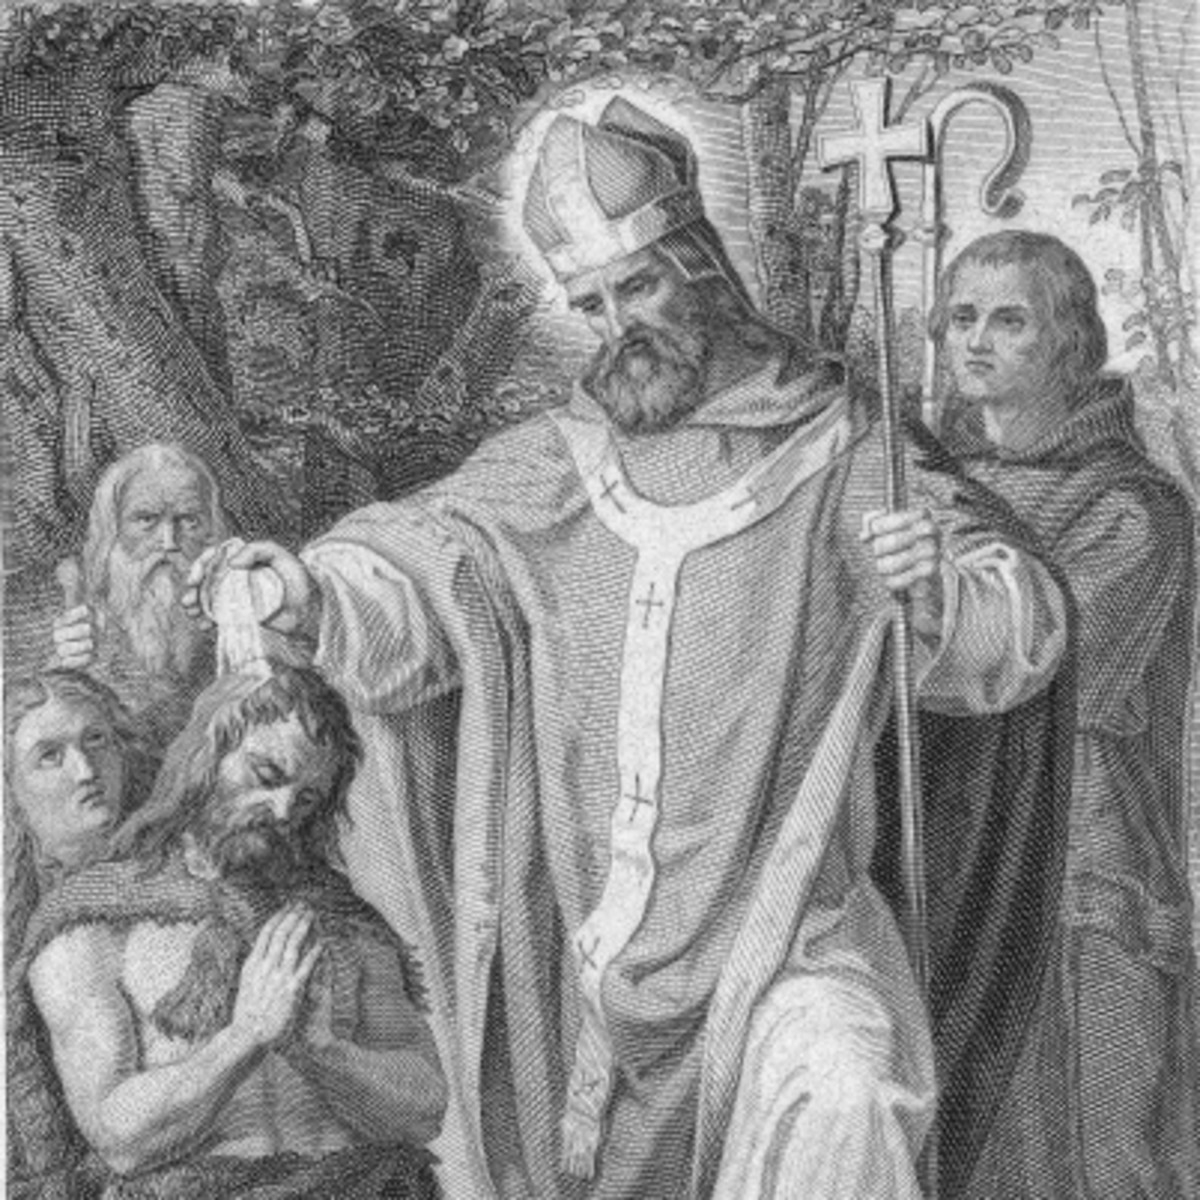 716 A.D. ••••••••••••• ST. BONIFACE - In 716 St. Boniface traveled from his Abbey in England to spread the Catholic faith to the people of Germany. As he led the faithful as the Archbishop of Mainz, abbeys were founded in and around Germany, spreading Benedictine monasticism.